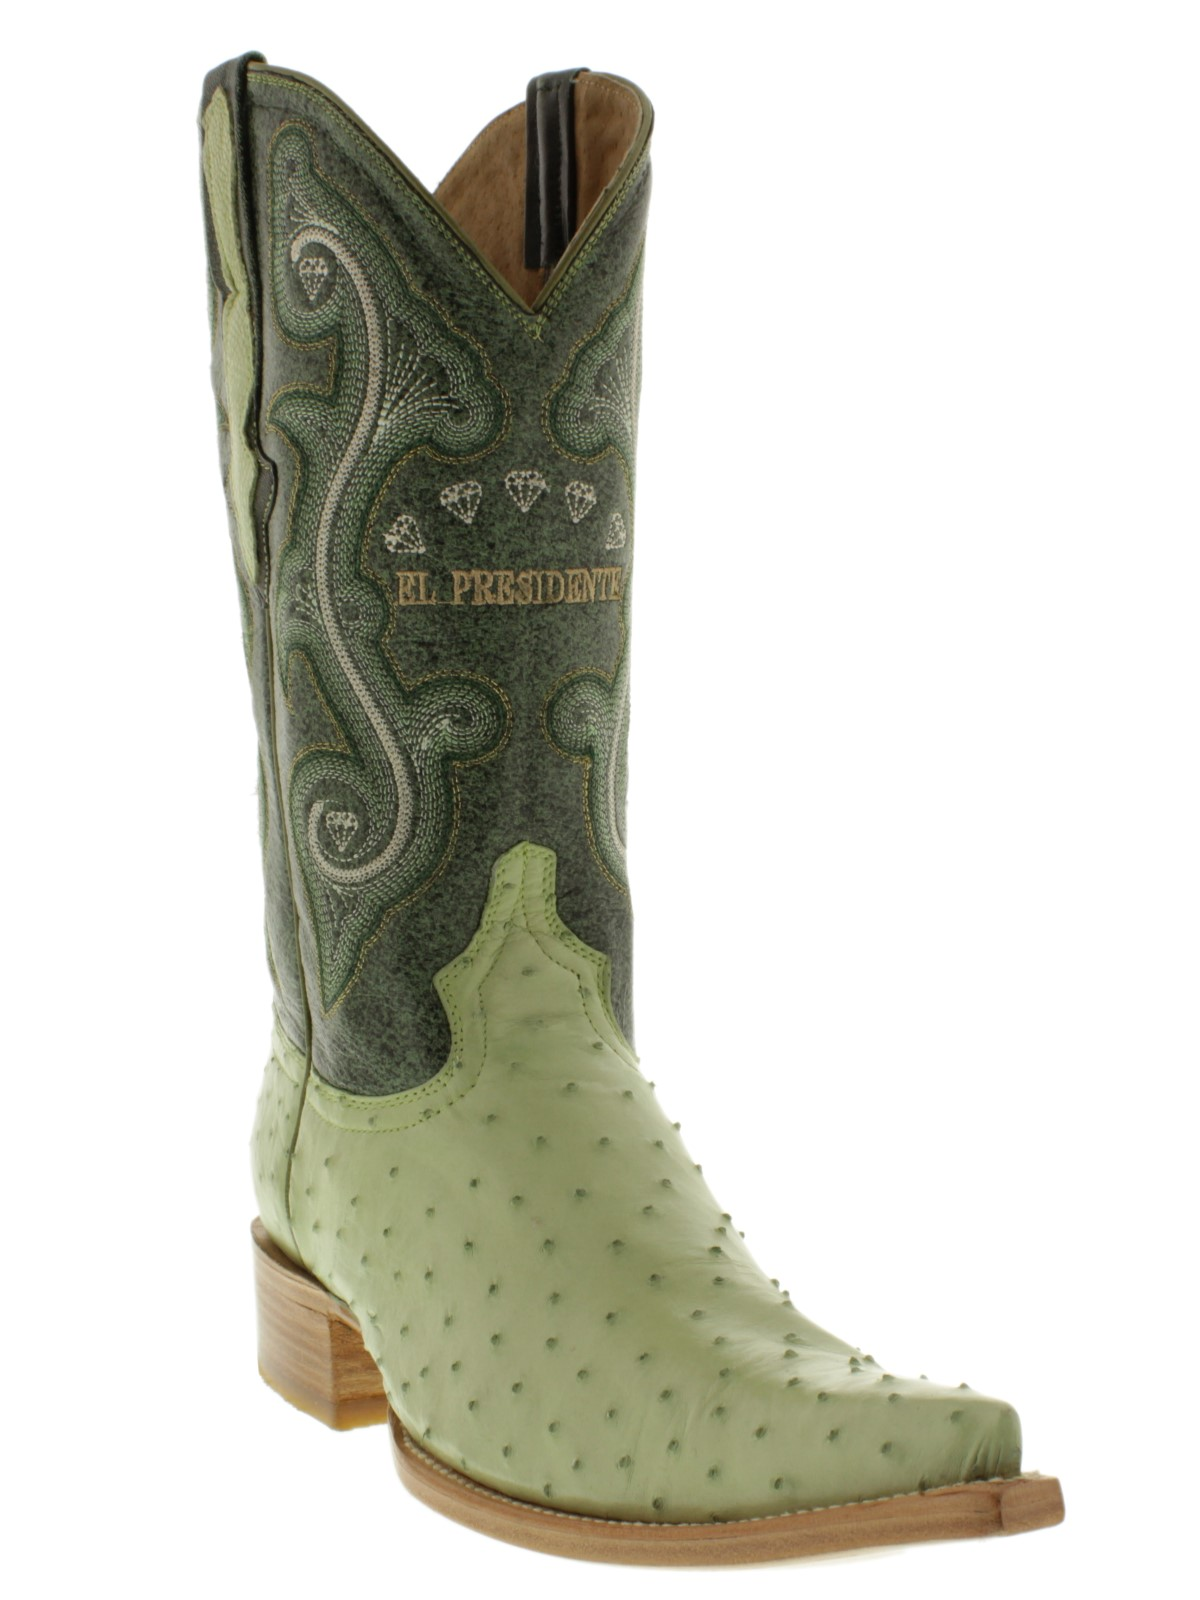 85136eecae2 Mens Authentic Ostrich Green Western Leather Cowboy Boots Pointed ...